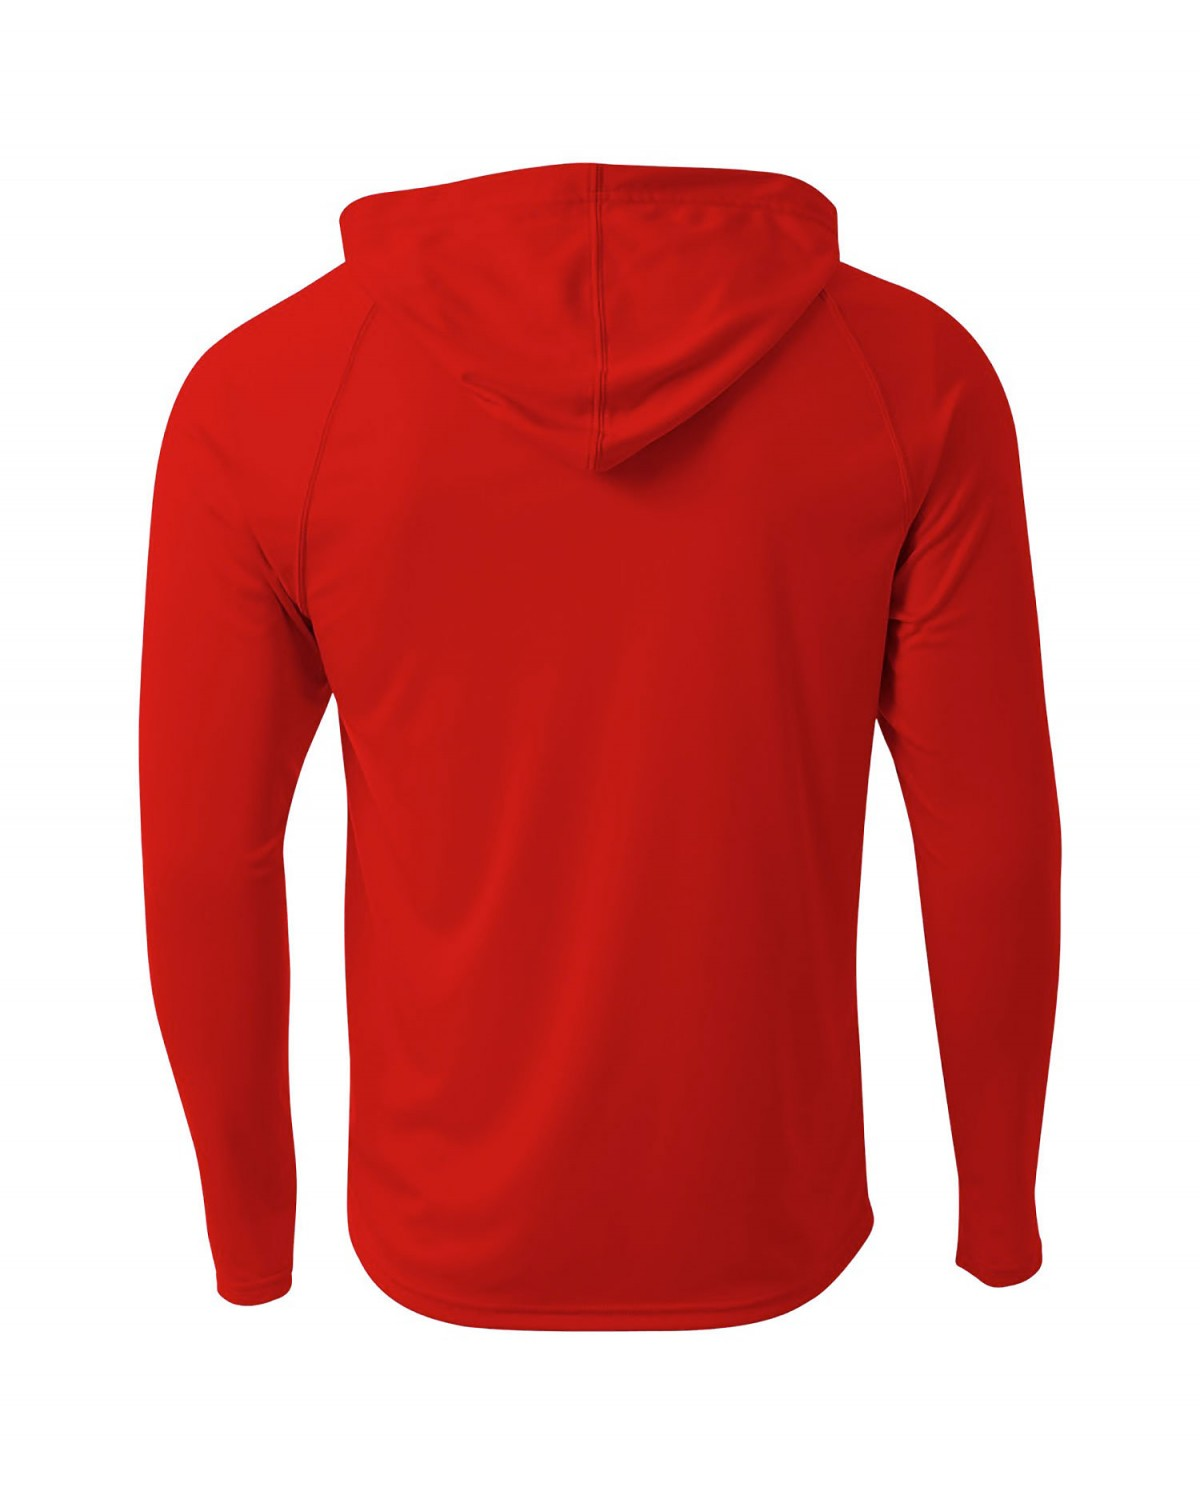 AA2335W American Apparel RED